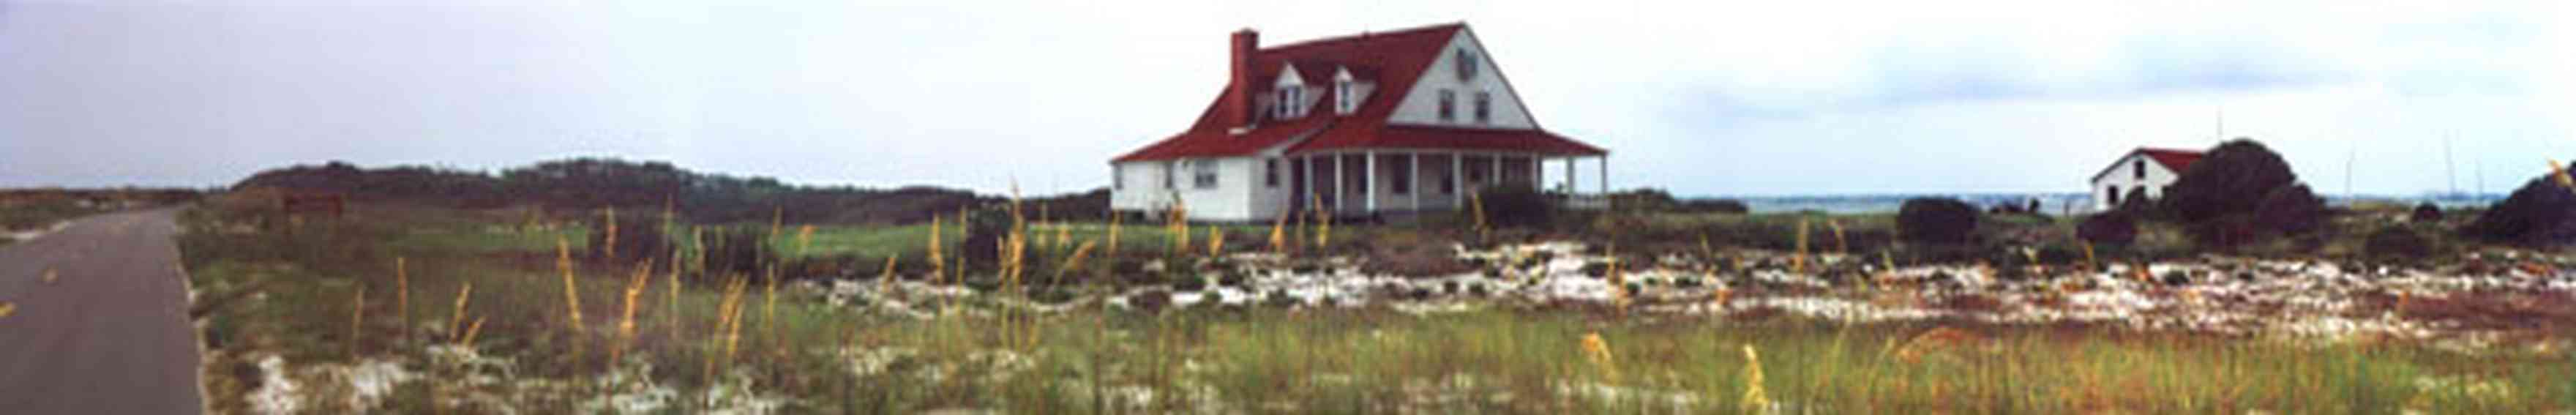 Gulf-Islands-National-Seashore:-Fort-Pickens:-Ranger-Station_03.jpg:  old coast guard station, fort pickens, gulf islands national seashore, dunes, sea oats, victorian house, red roof, dormer windows